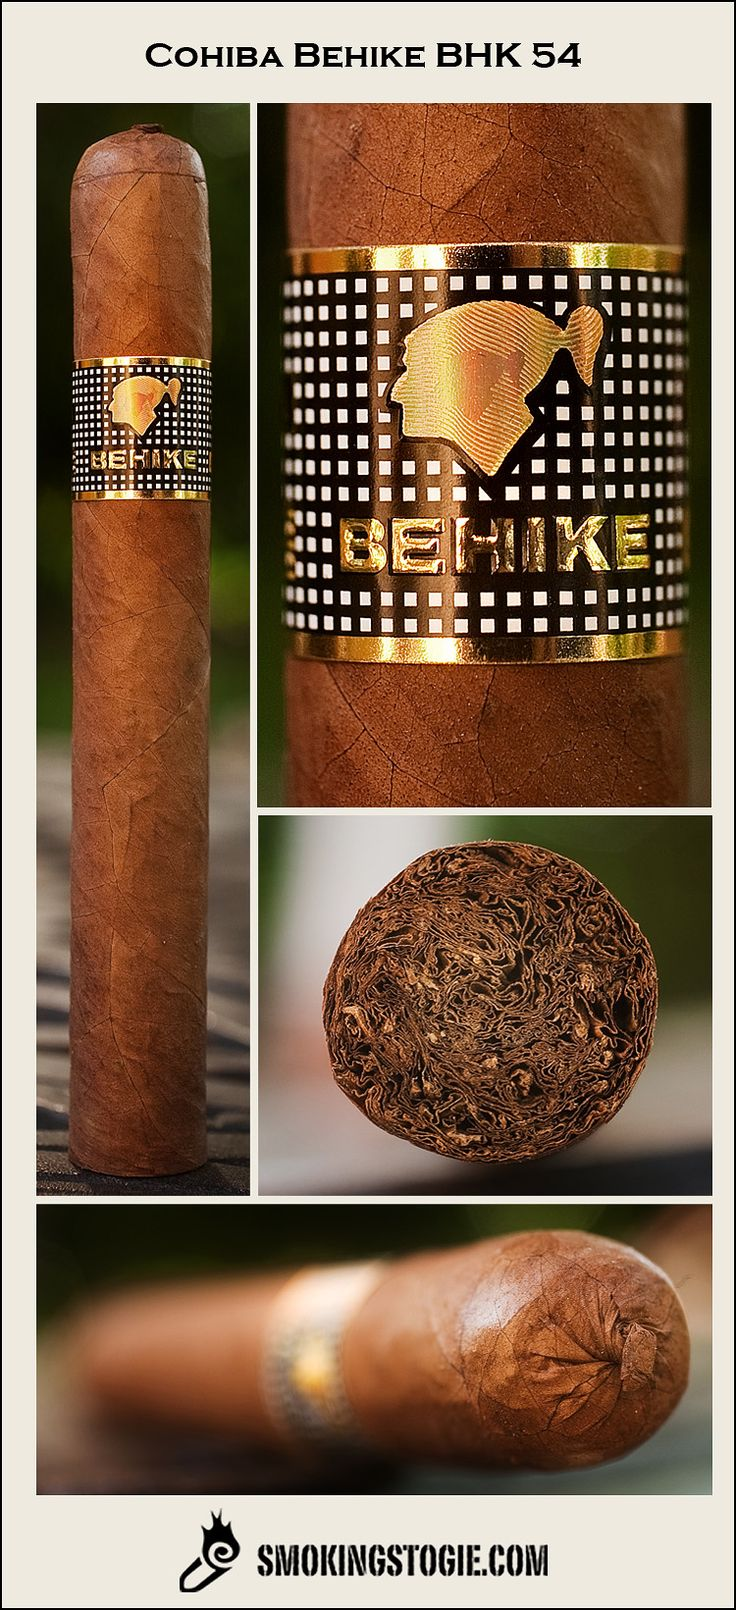 COHIBA BEHIKE BHK54 location Cuba Bold- notes of coffee beans, with an earthy core leading to a leathery smoke... taste that is out of this world...